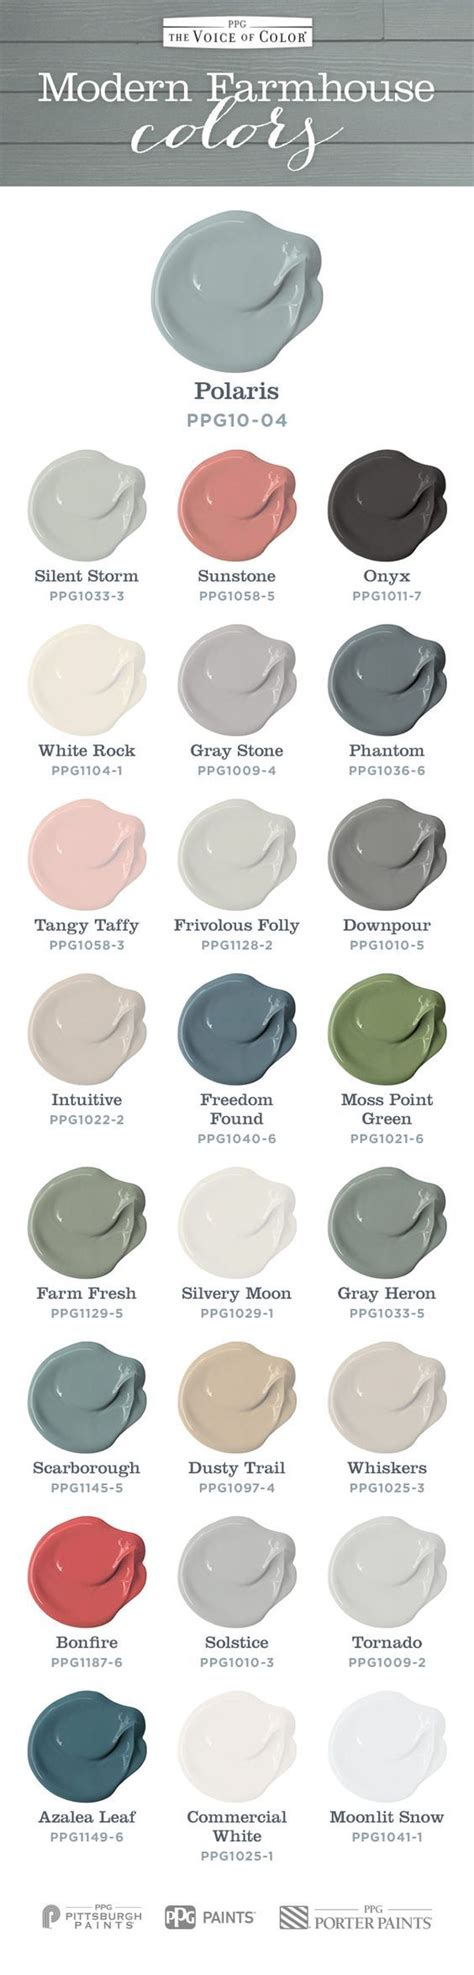 25 best ideas about paint colors on pinterest interior paint colors wall colors and bedroom